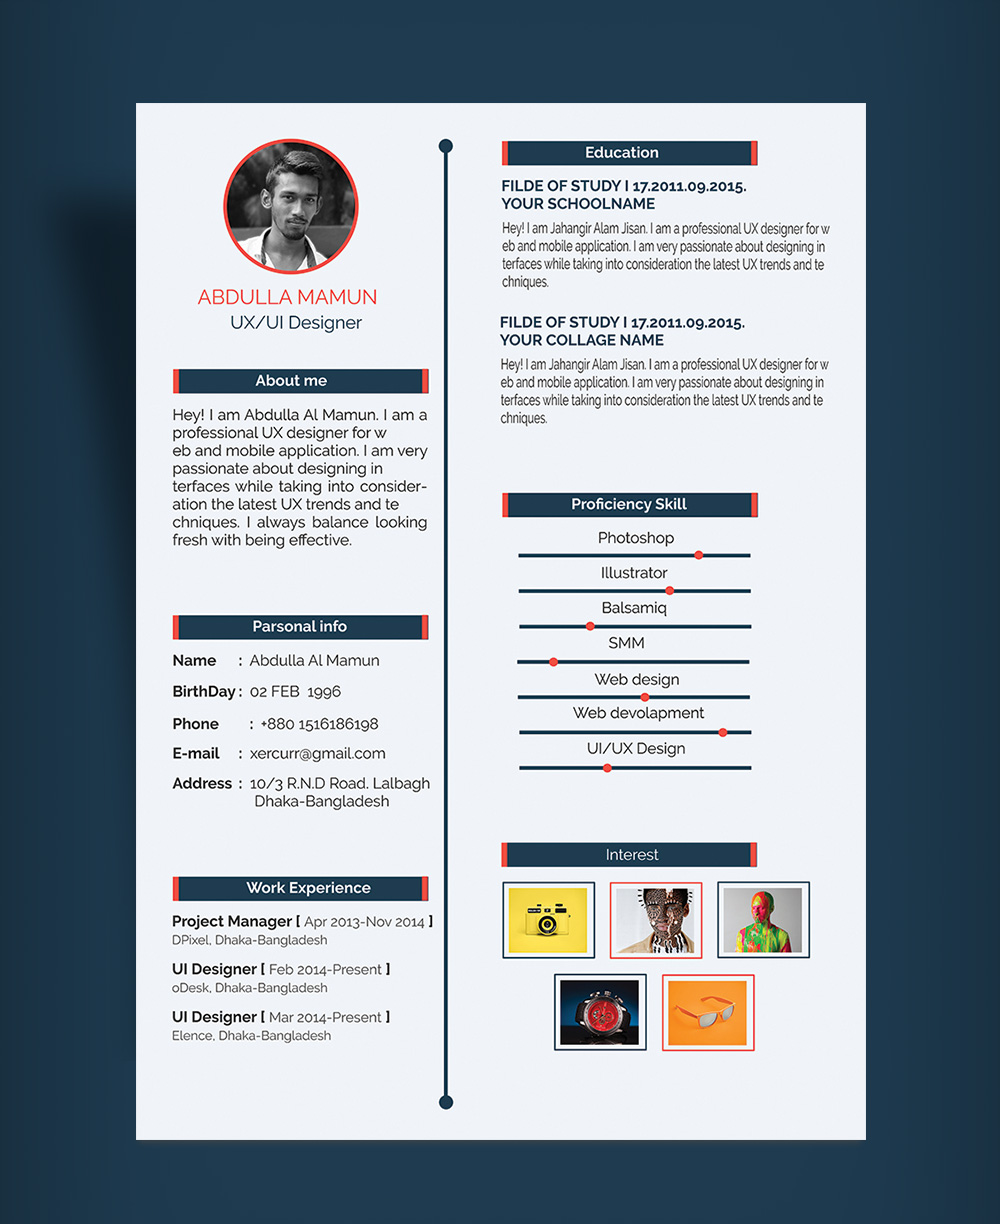 Free Simple Resume (CV) Design Template For UX-UI Designer PSD File (1)